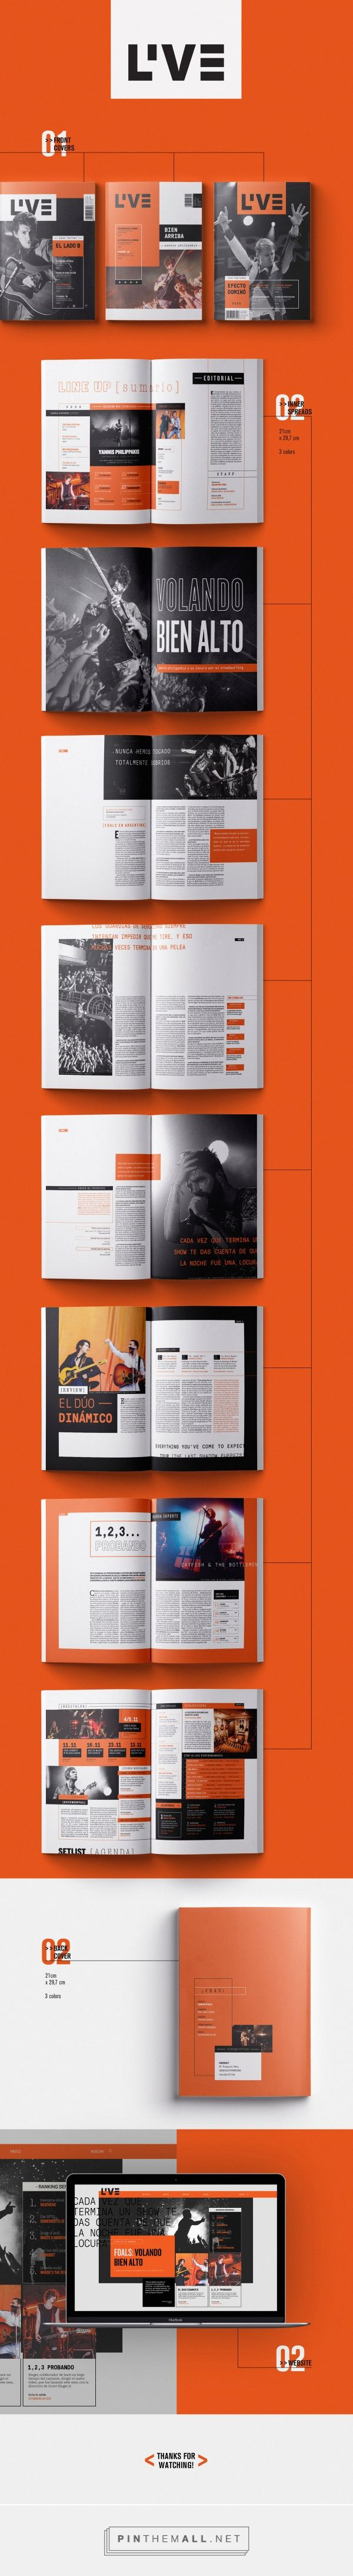 LIVE | Magazine on Behance - created via https://pinthemall.net